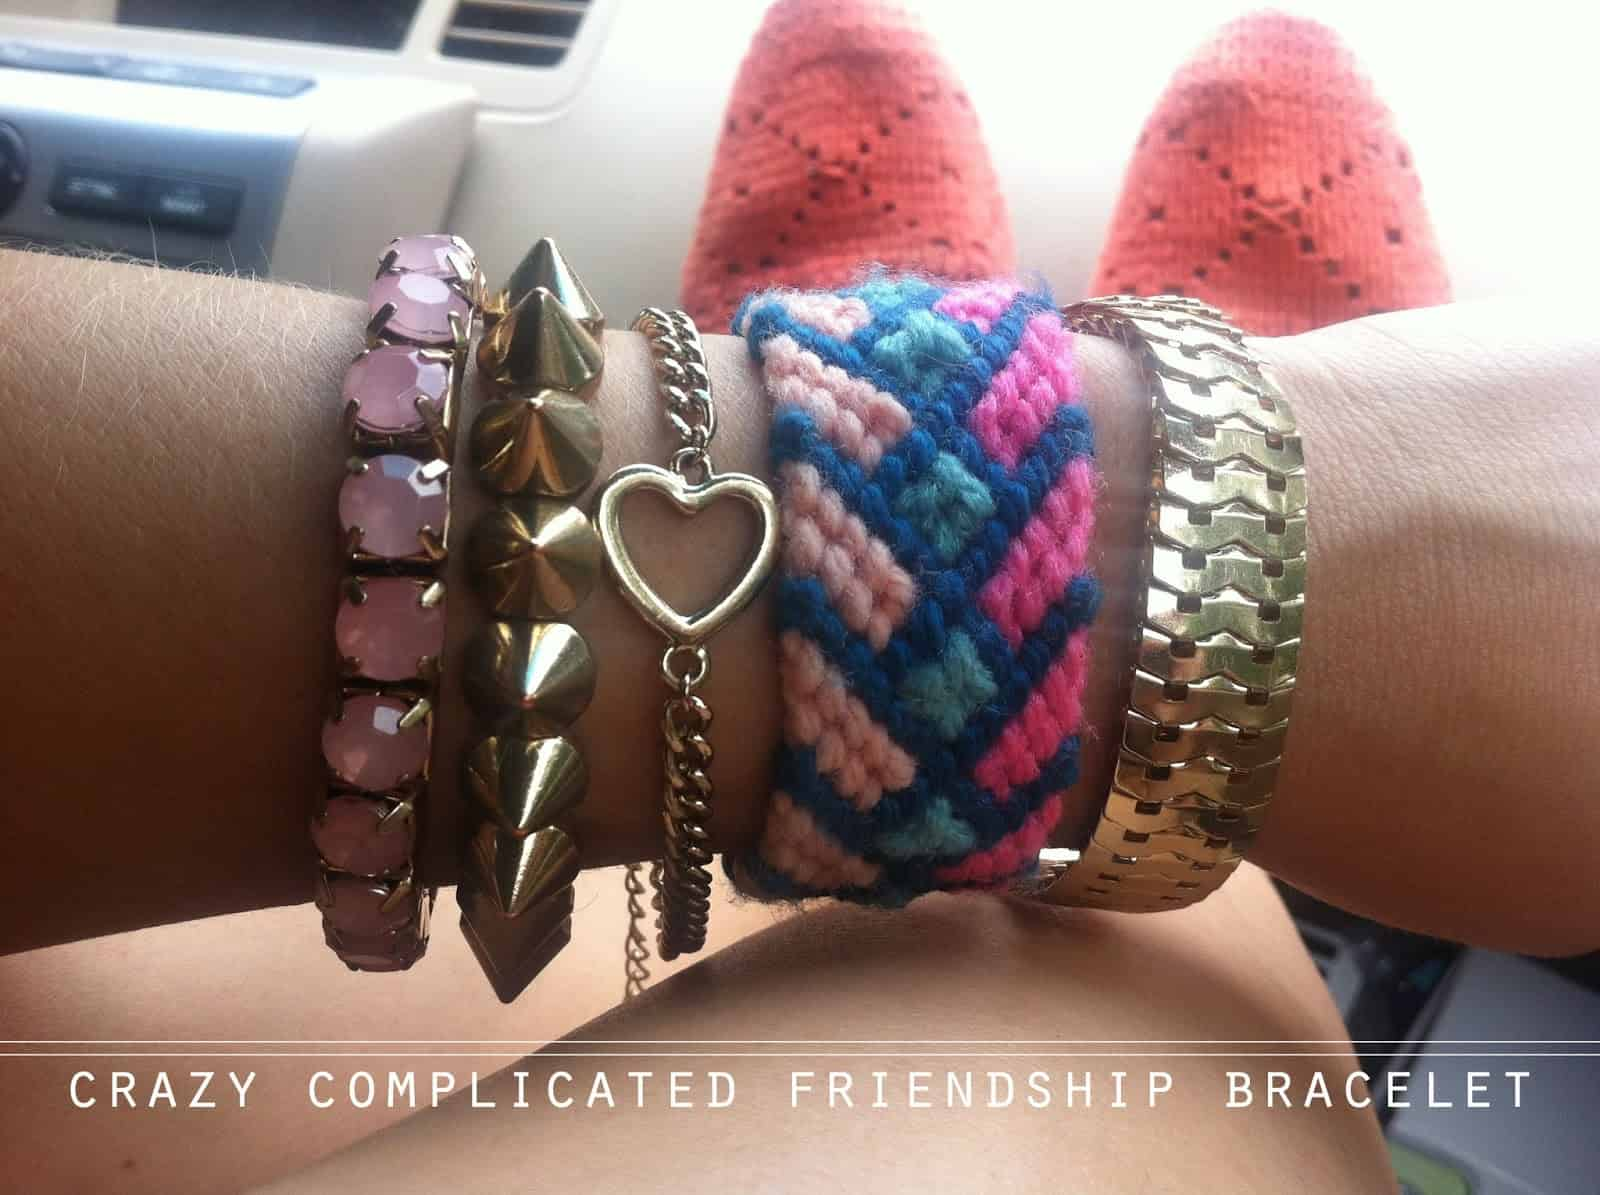 The crazy complicated yarn friendship bracelet